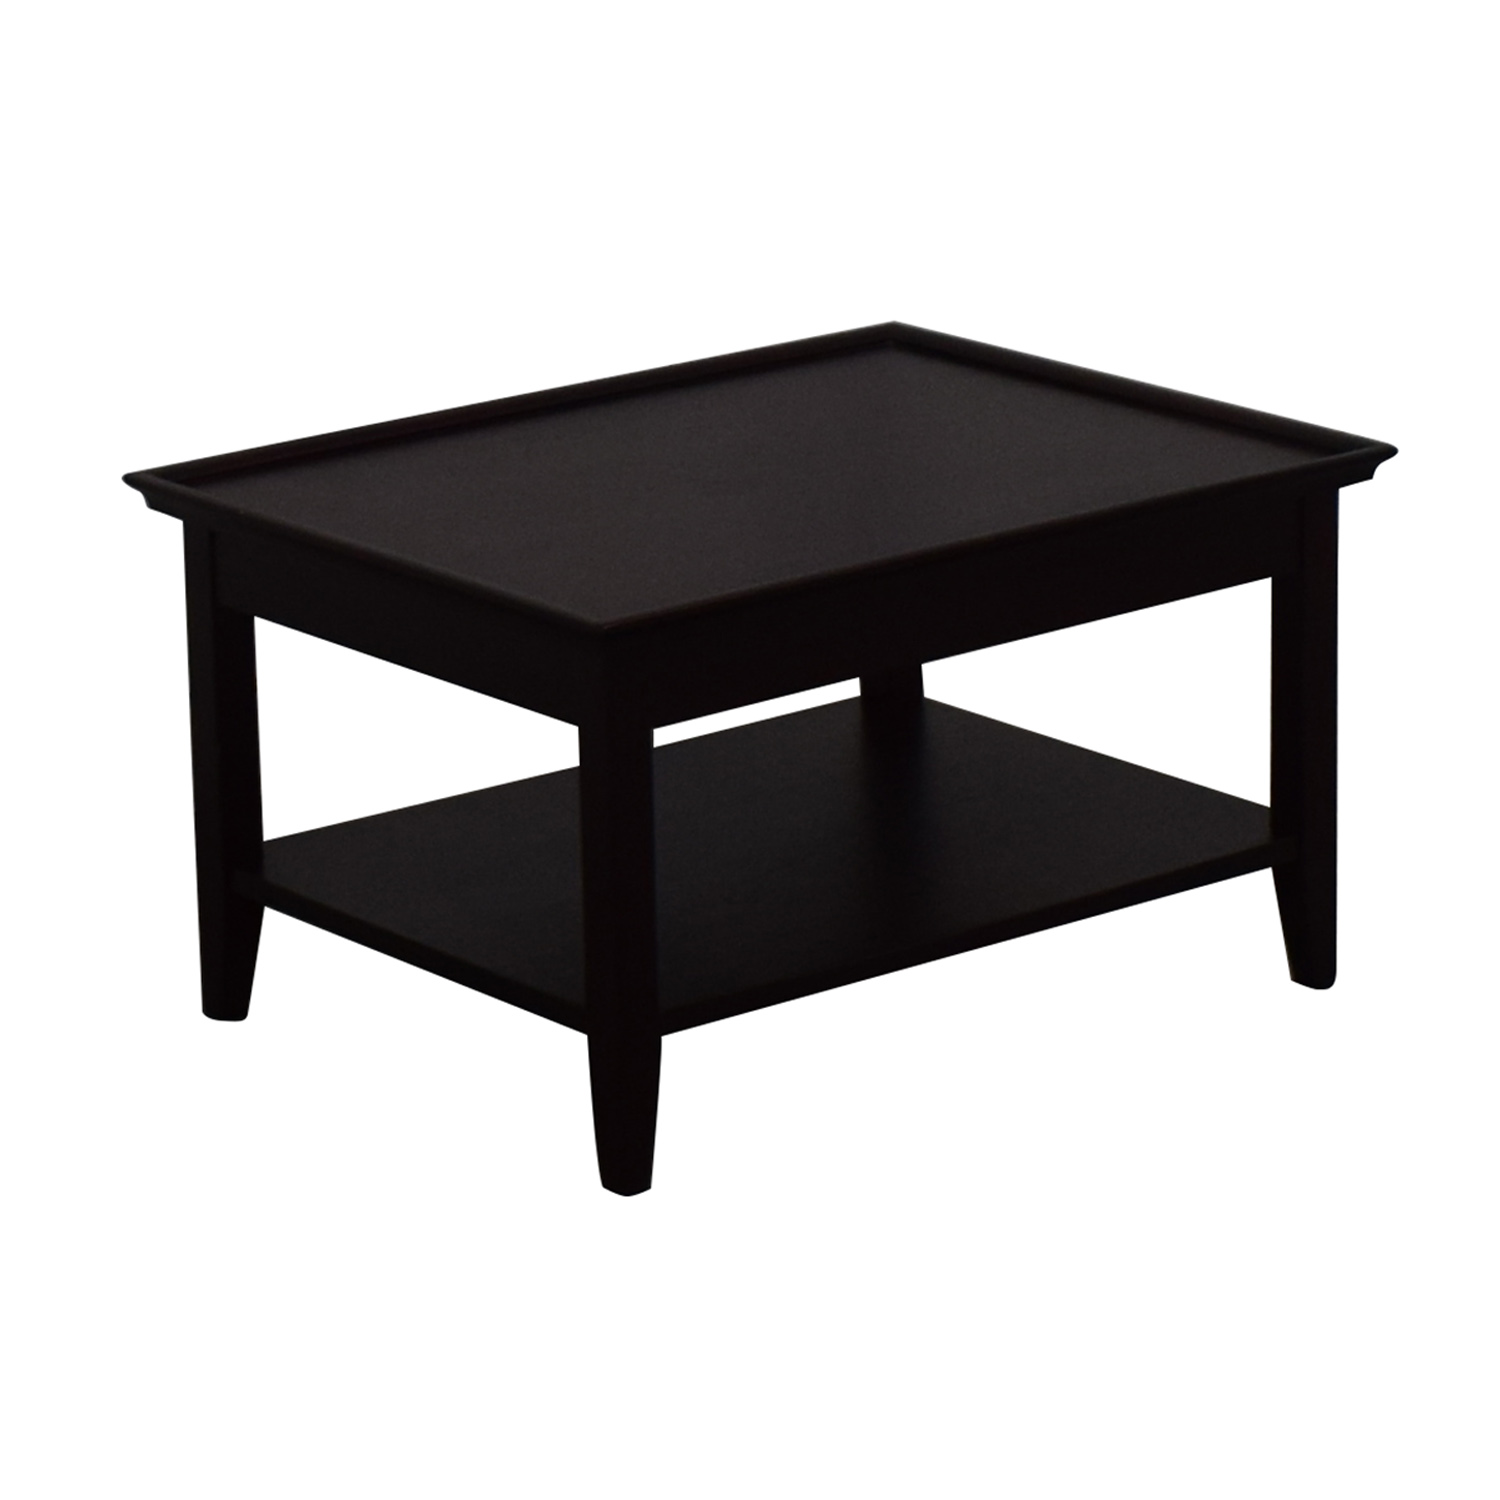 Crate & Barrel Bradshaw Coffee Table Crate & Barrel